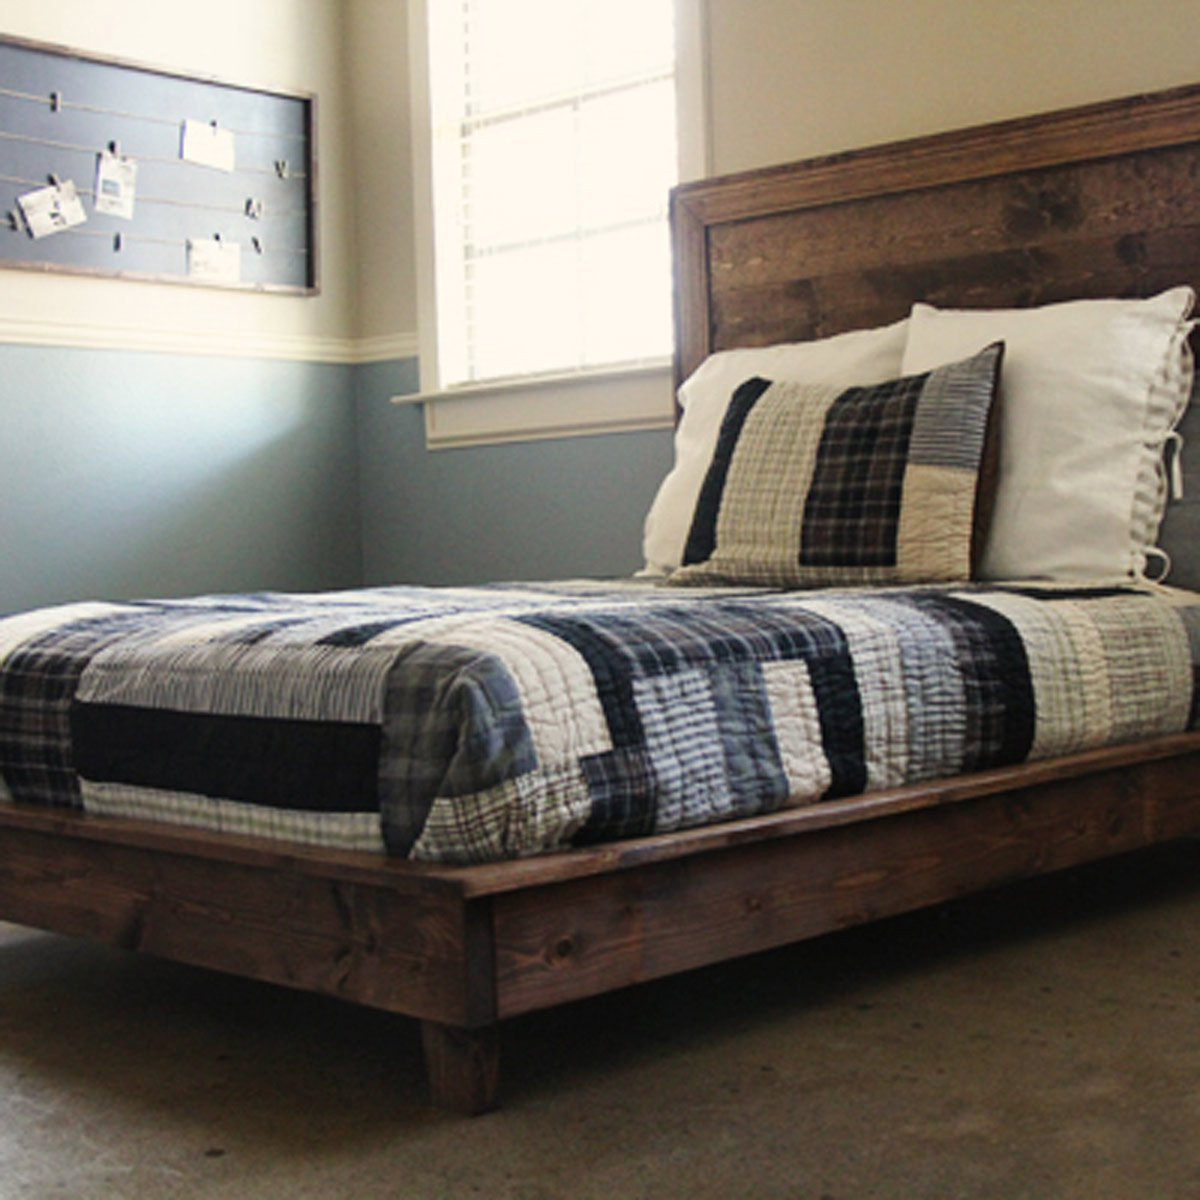 Best ideas about DIY Wood Beds . Save or Pin 10 Awesome DIY Platform Bed Designs — The Family Handyman Now.